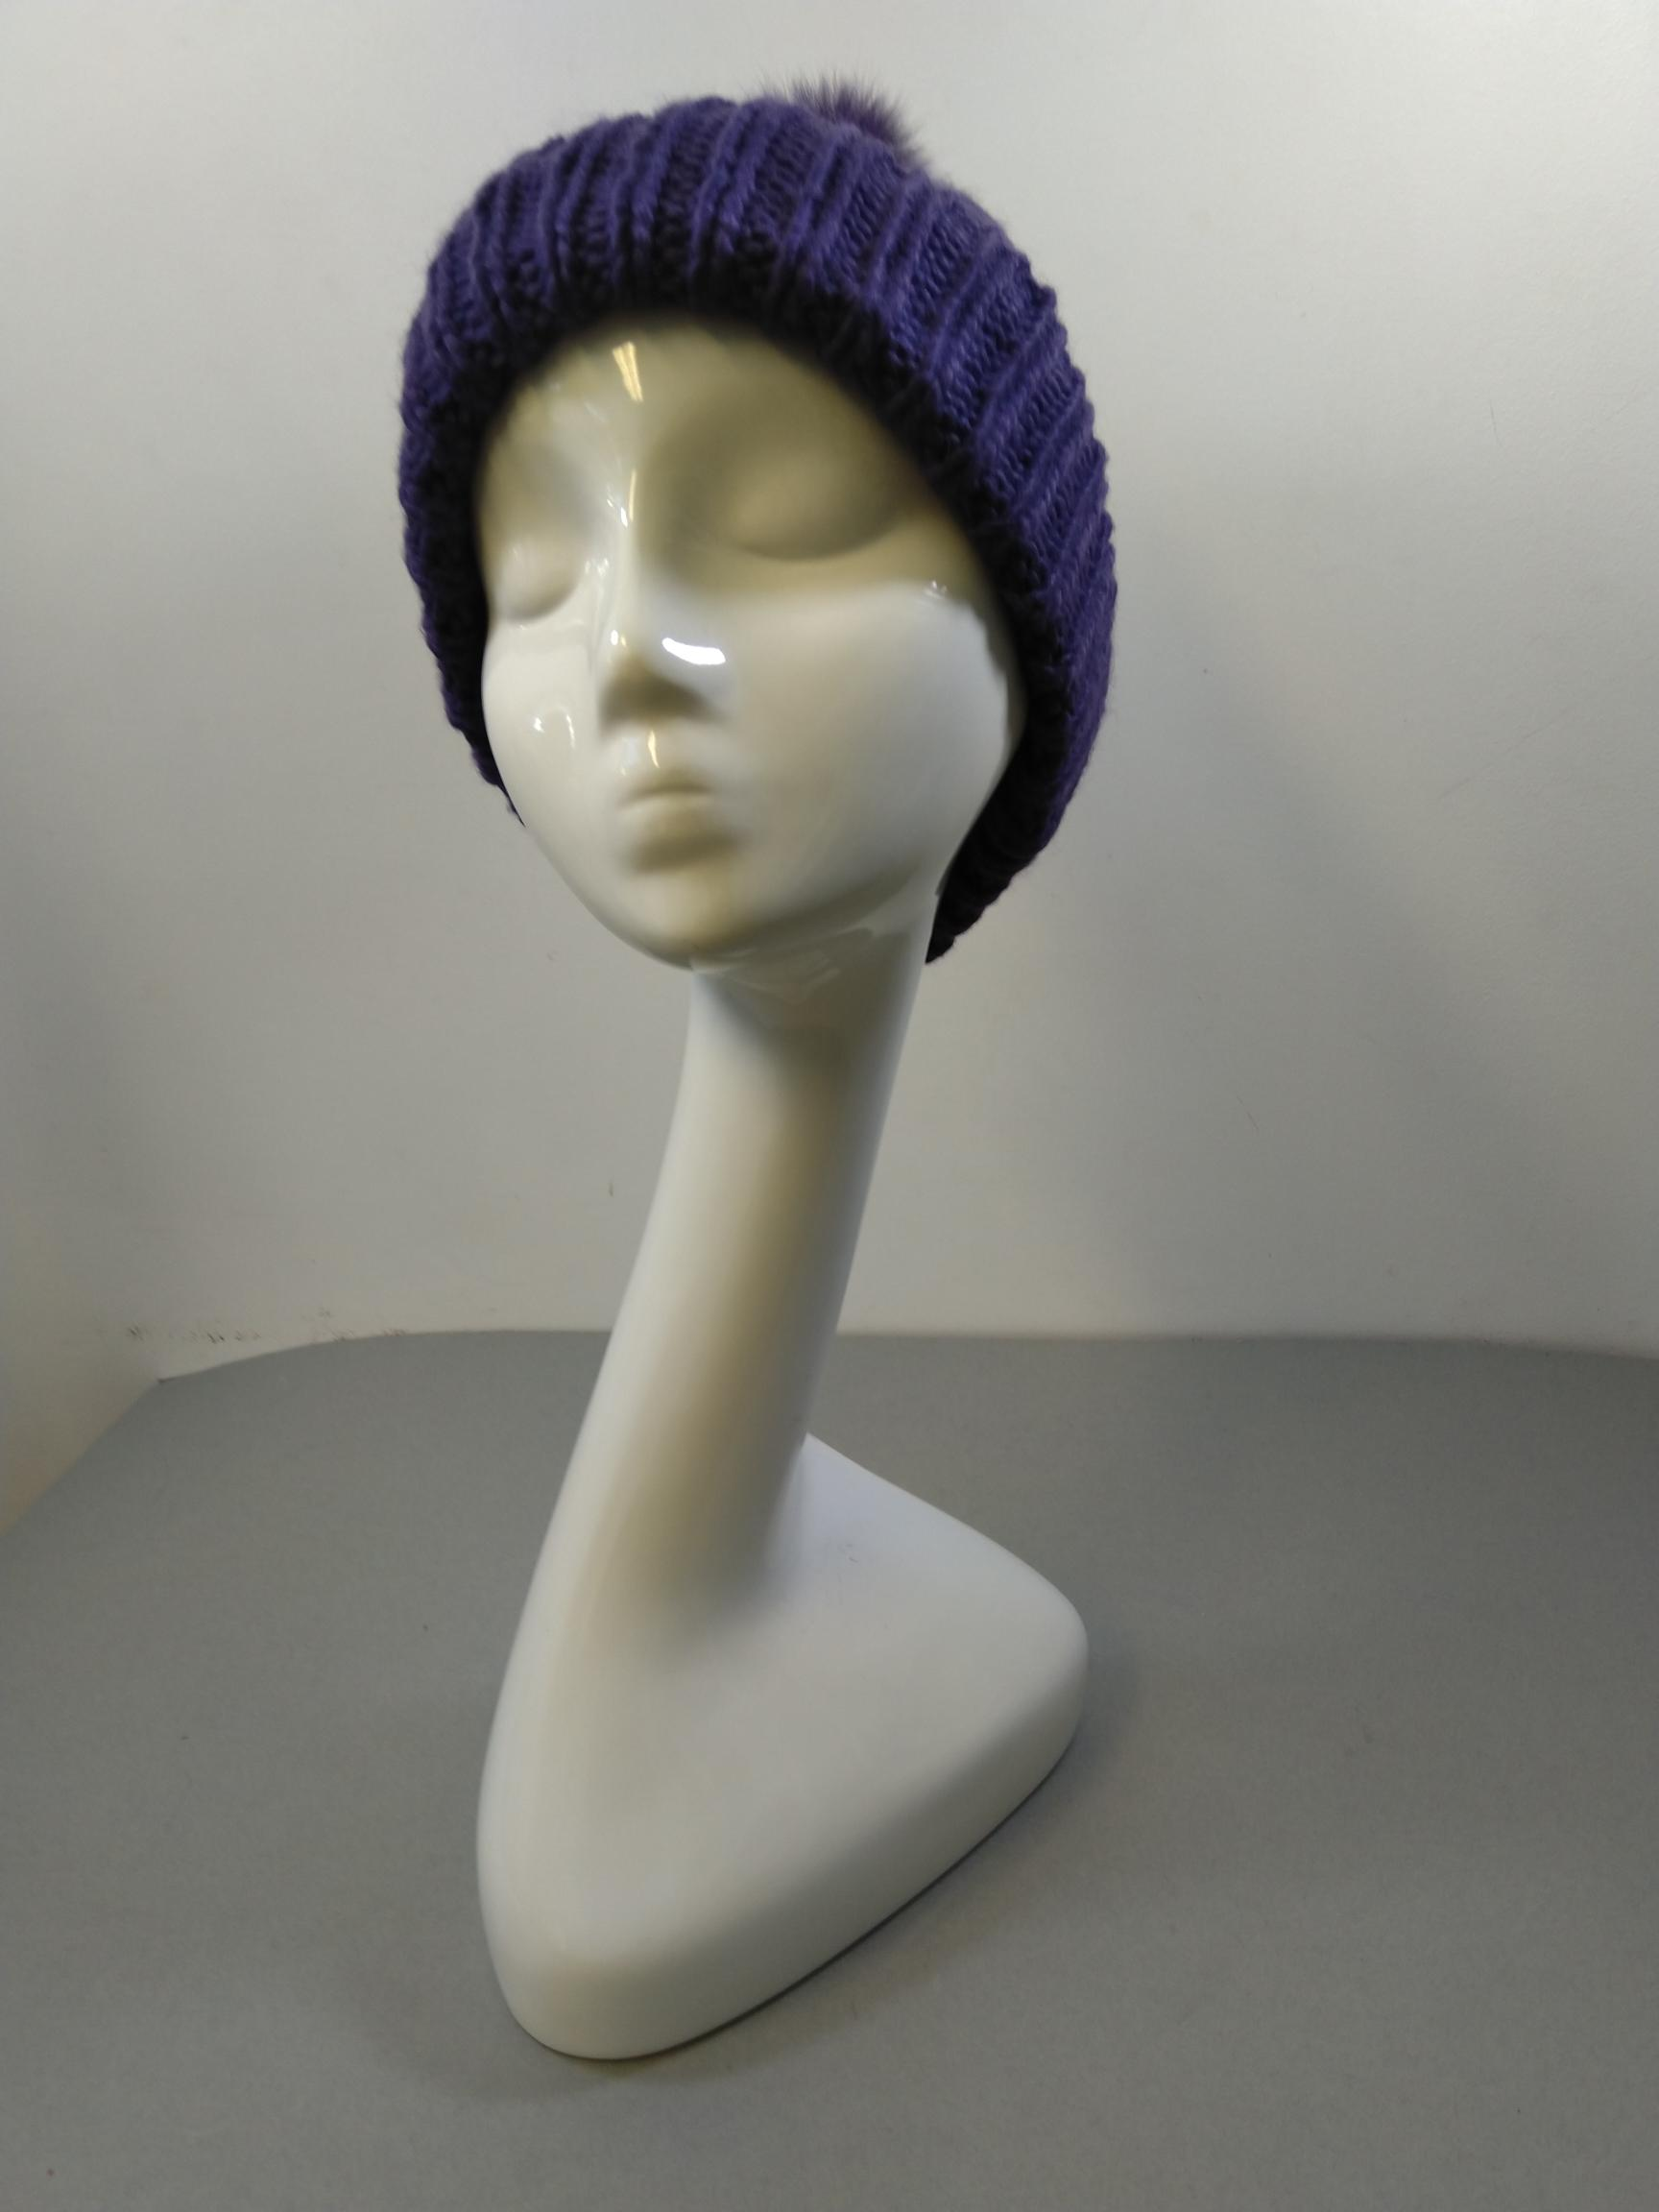 Sommerville Job Lot Of 20  Hand Cable Knitted Purple Hats With Fur Pom Pom One Size BNWT